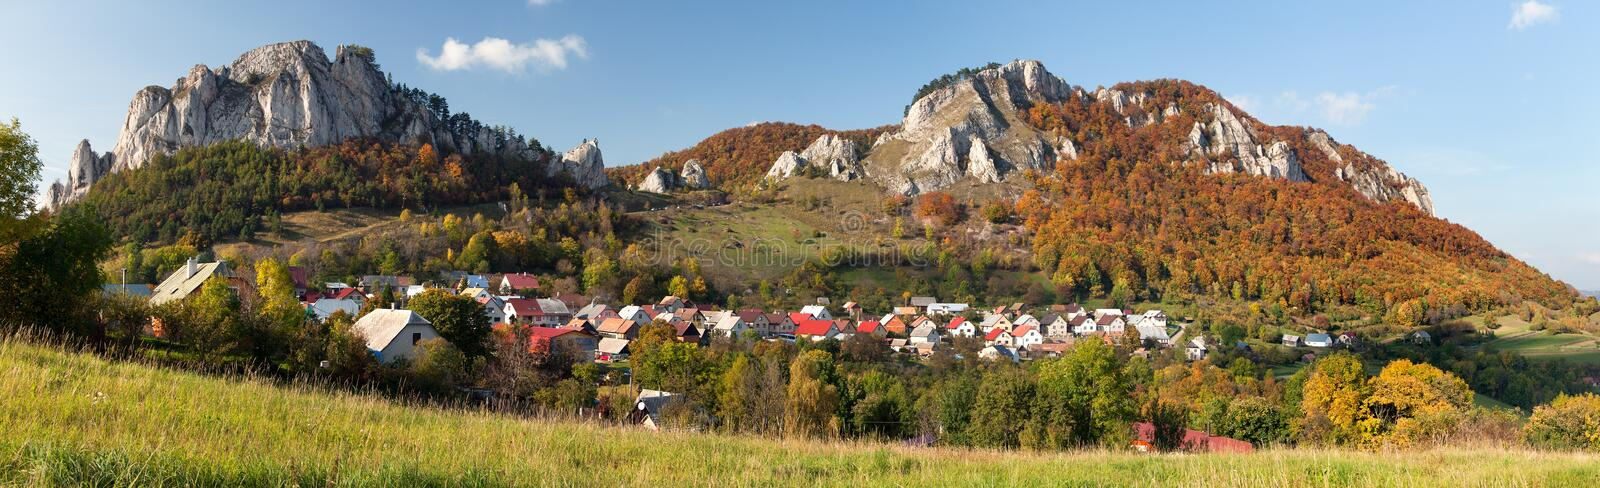 Vrsatec and Vrsatecke Podhradie village - Slovakia. Autumnal panoramic view of Vrsatec and Vrsatecke Podhradie village - Slovakia royalty free stock photography